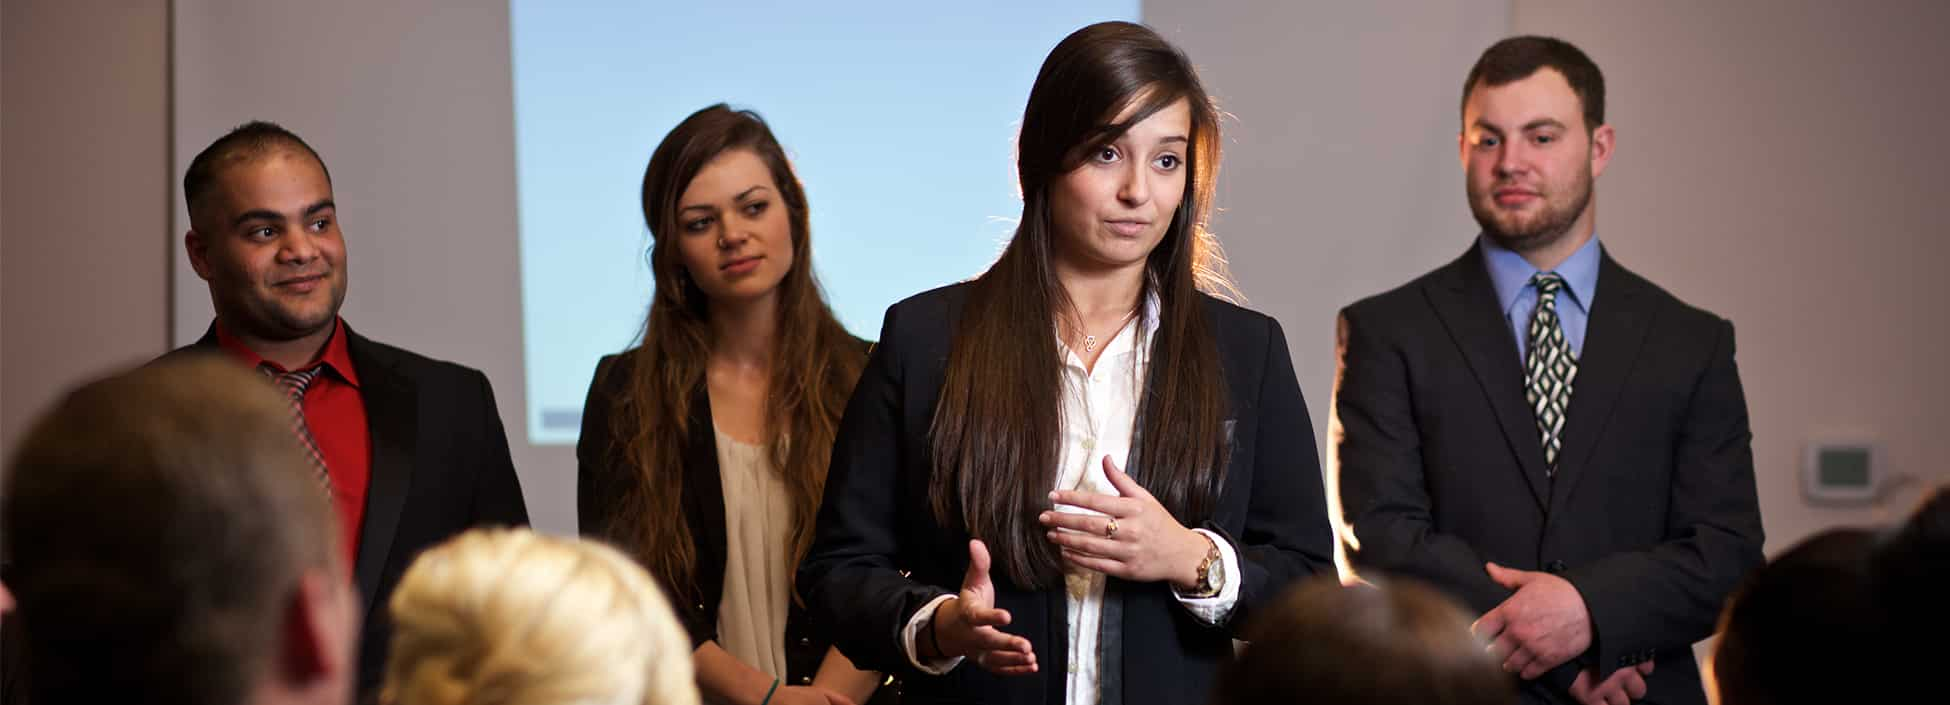 Business presentations to clients are important practice, business technology and management